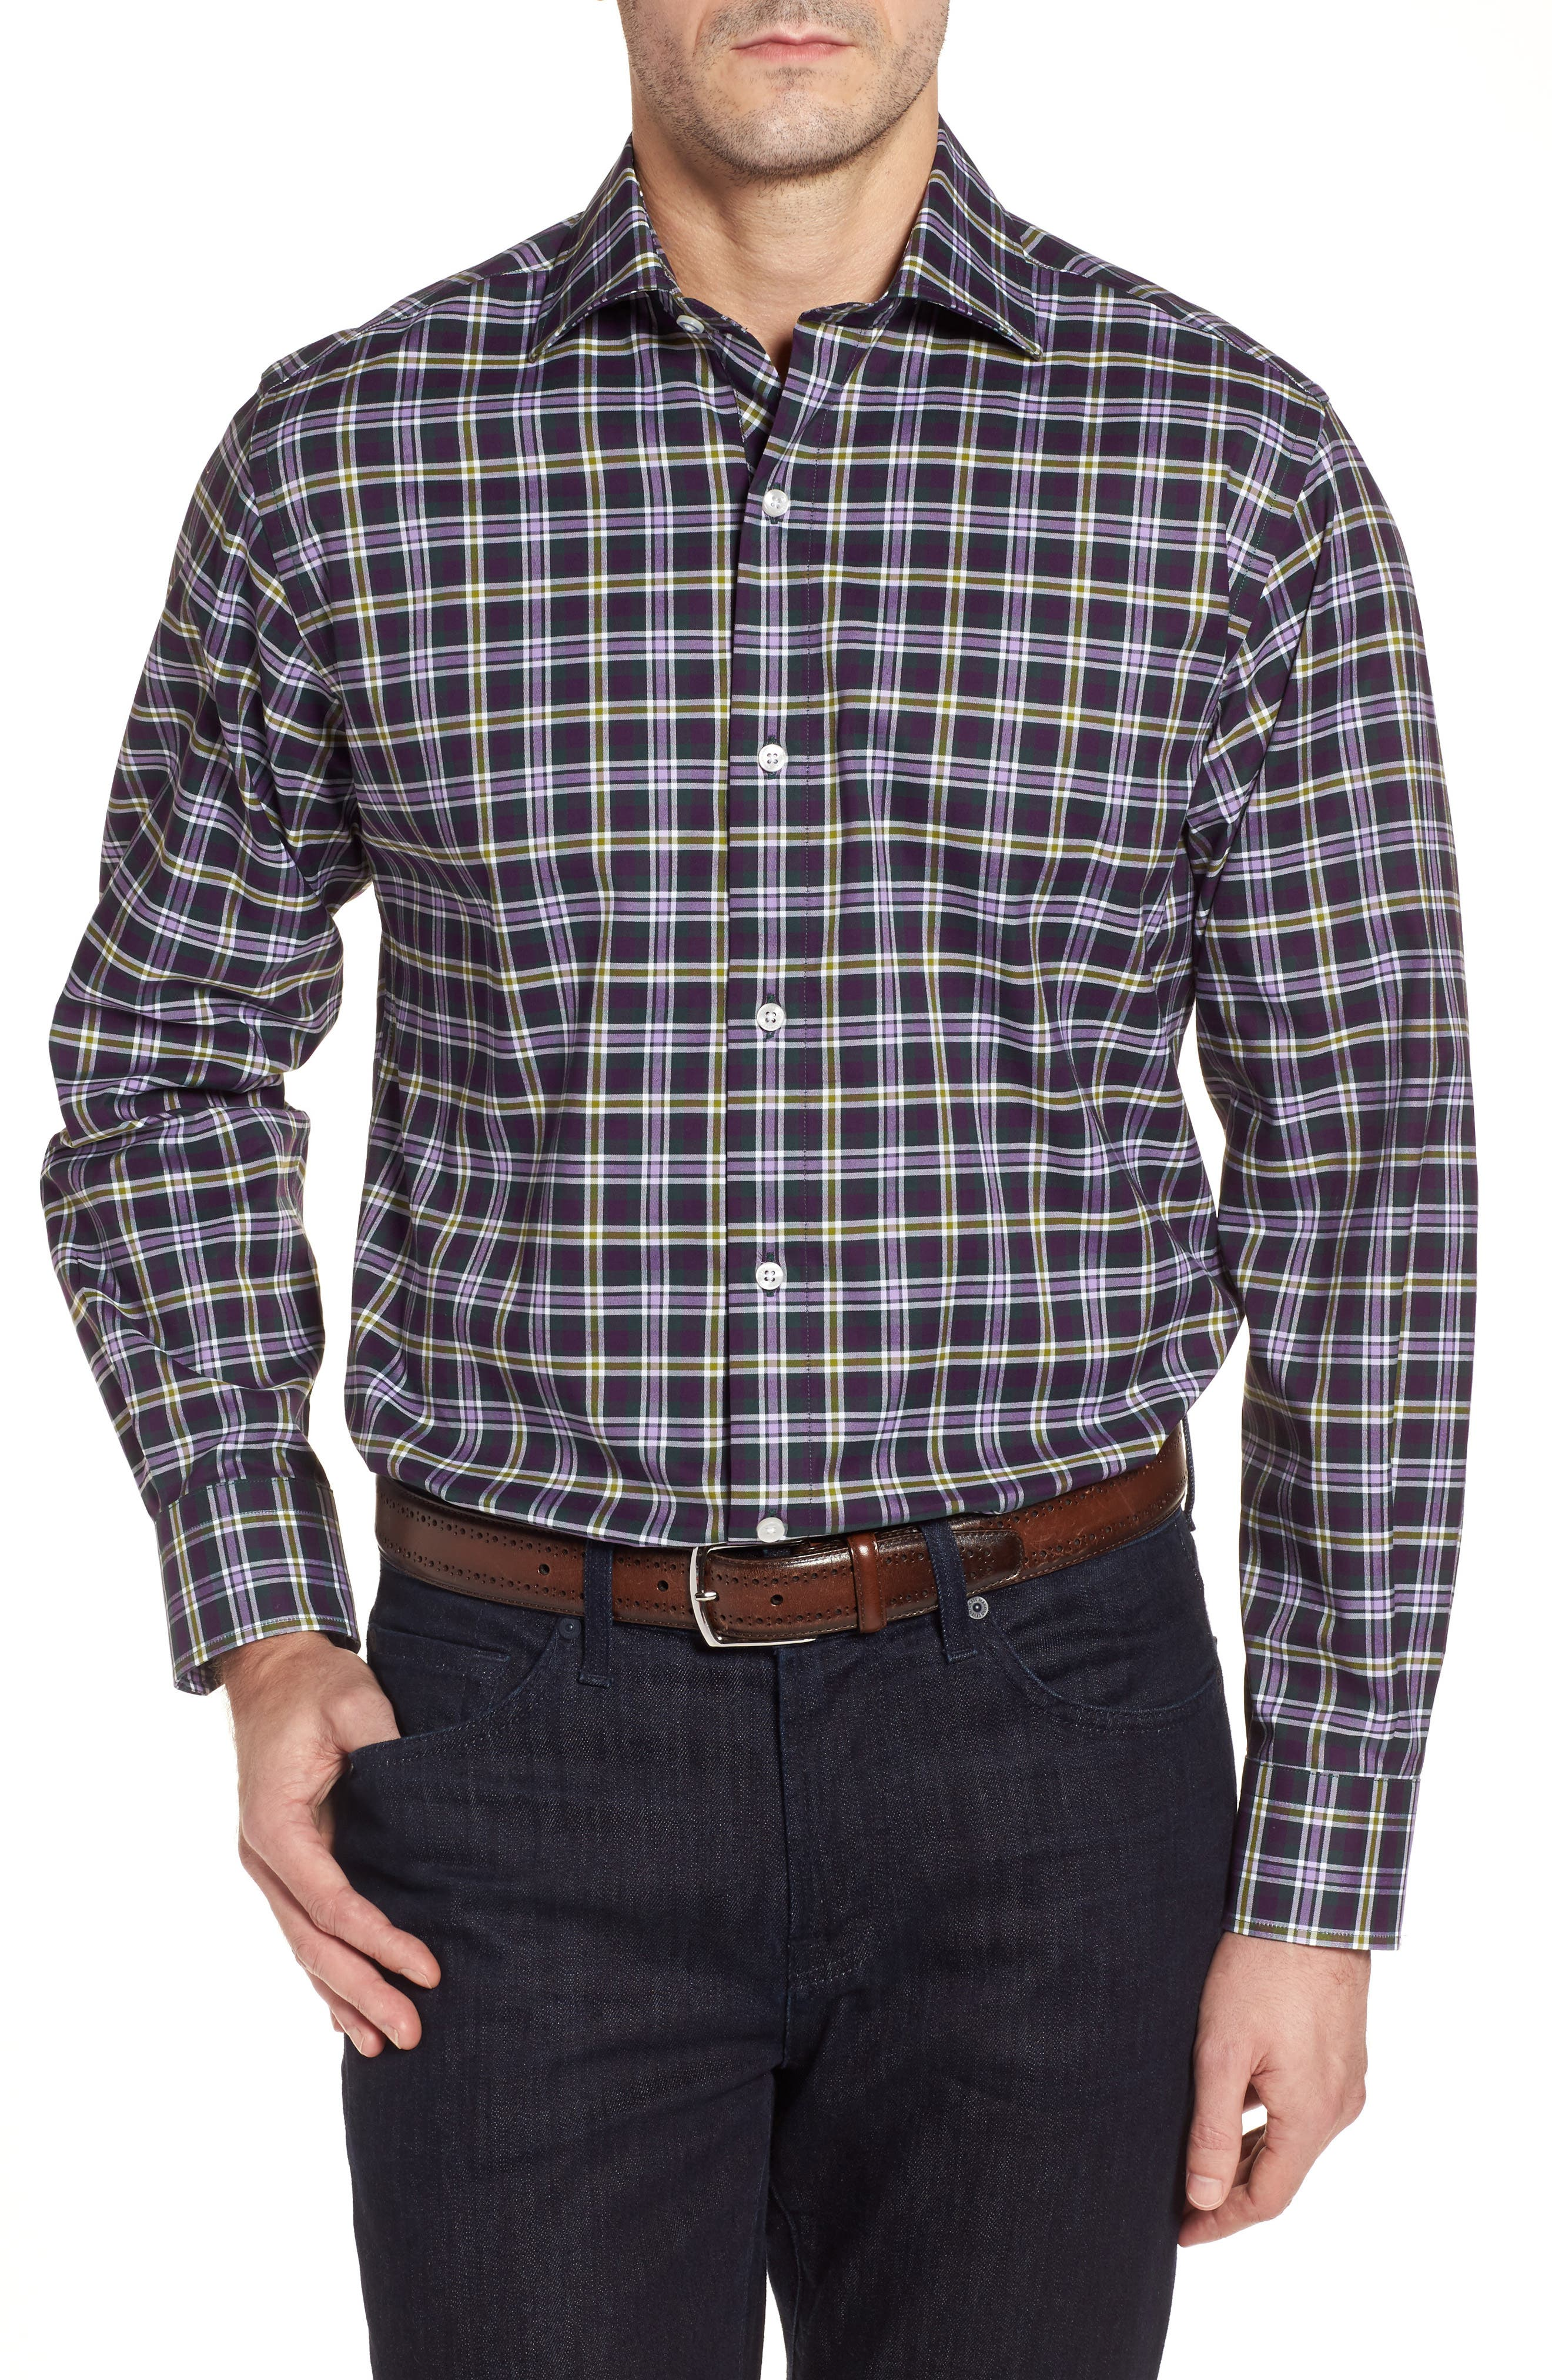 Main Image - TailorByrd Calhoun Regular Fit Check Sport Shirt